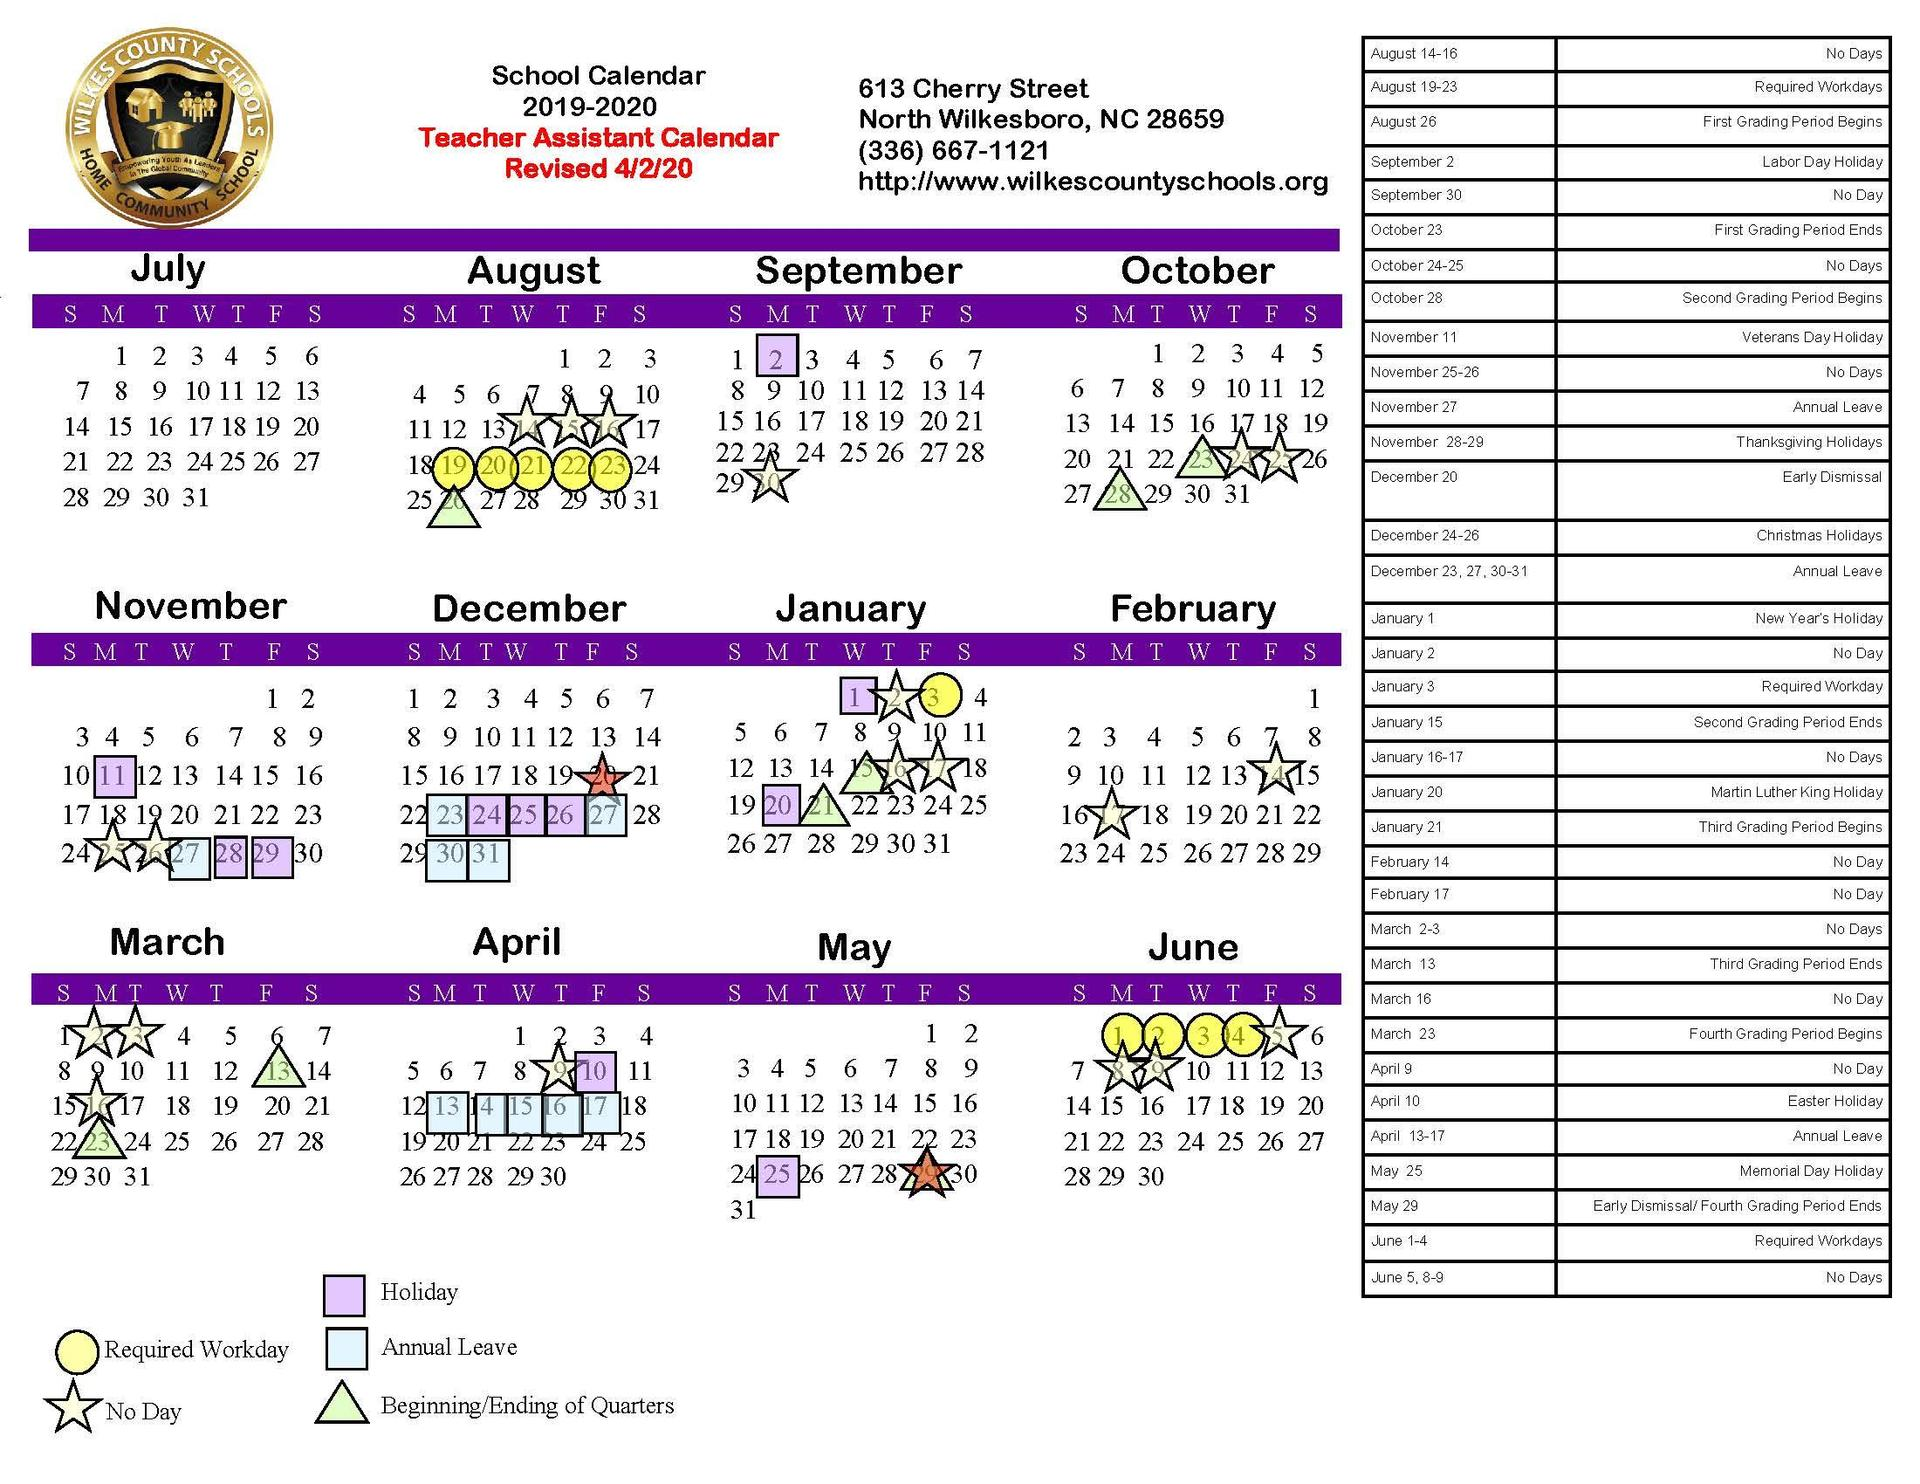 2019-2020 Board-Approved Teacher Assistant Calendar